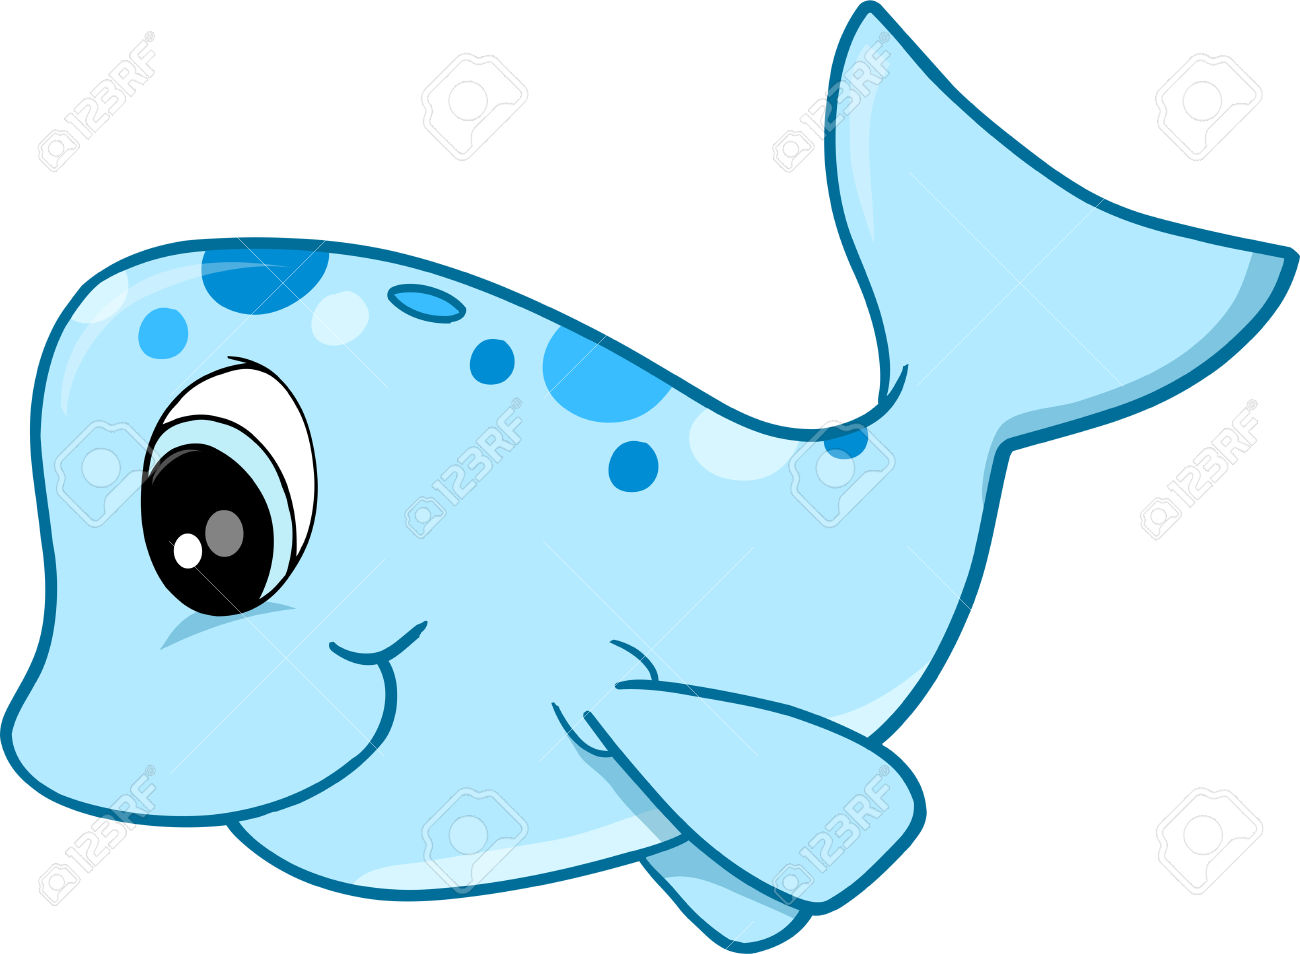 Baleine clipart #17, Download drawings